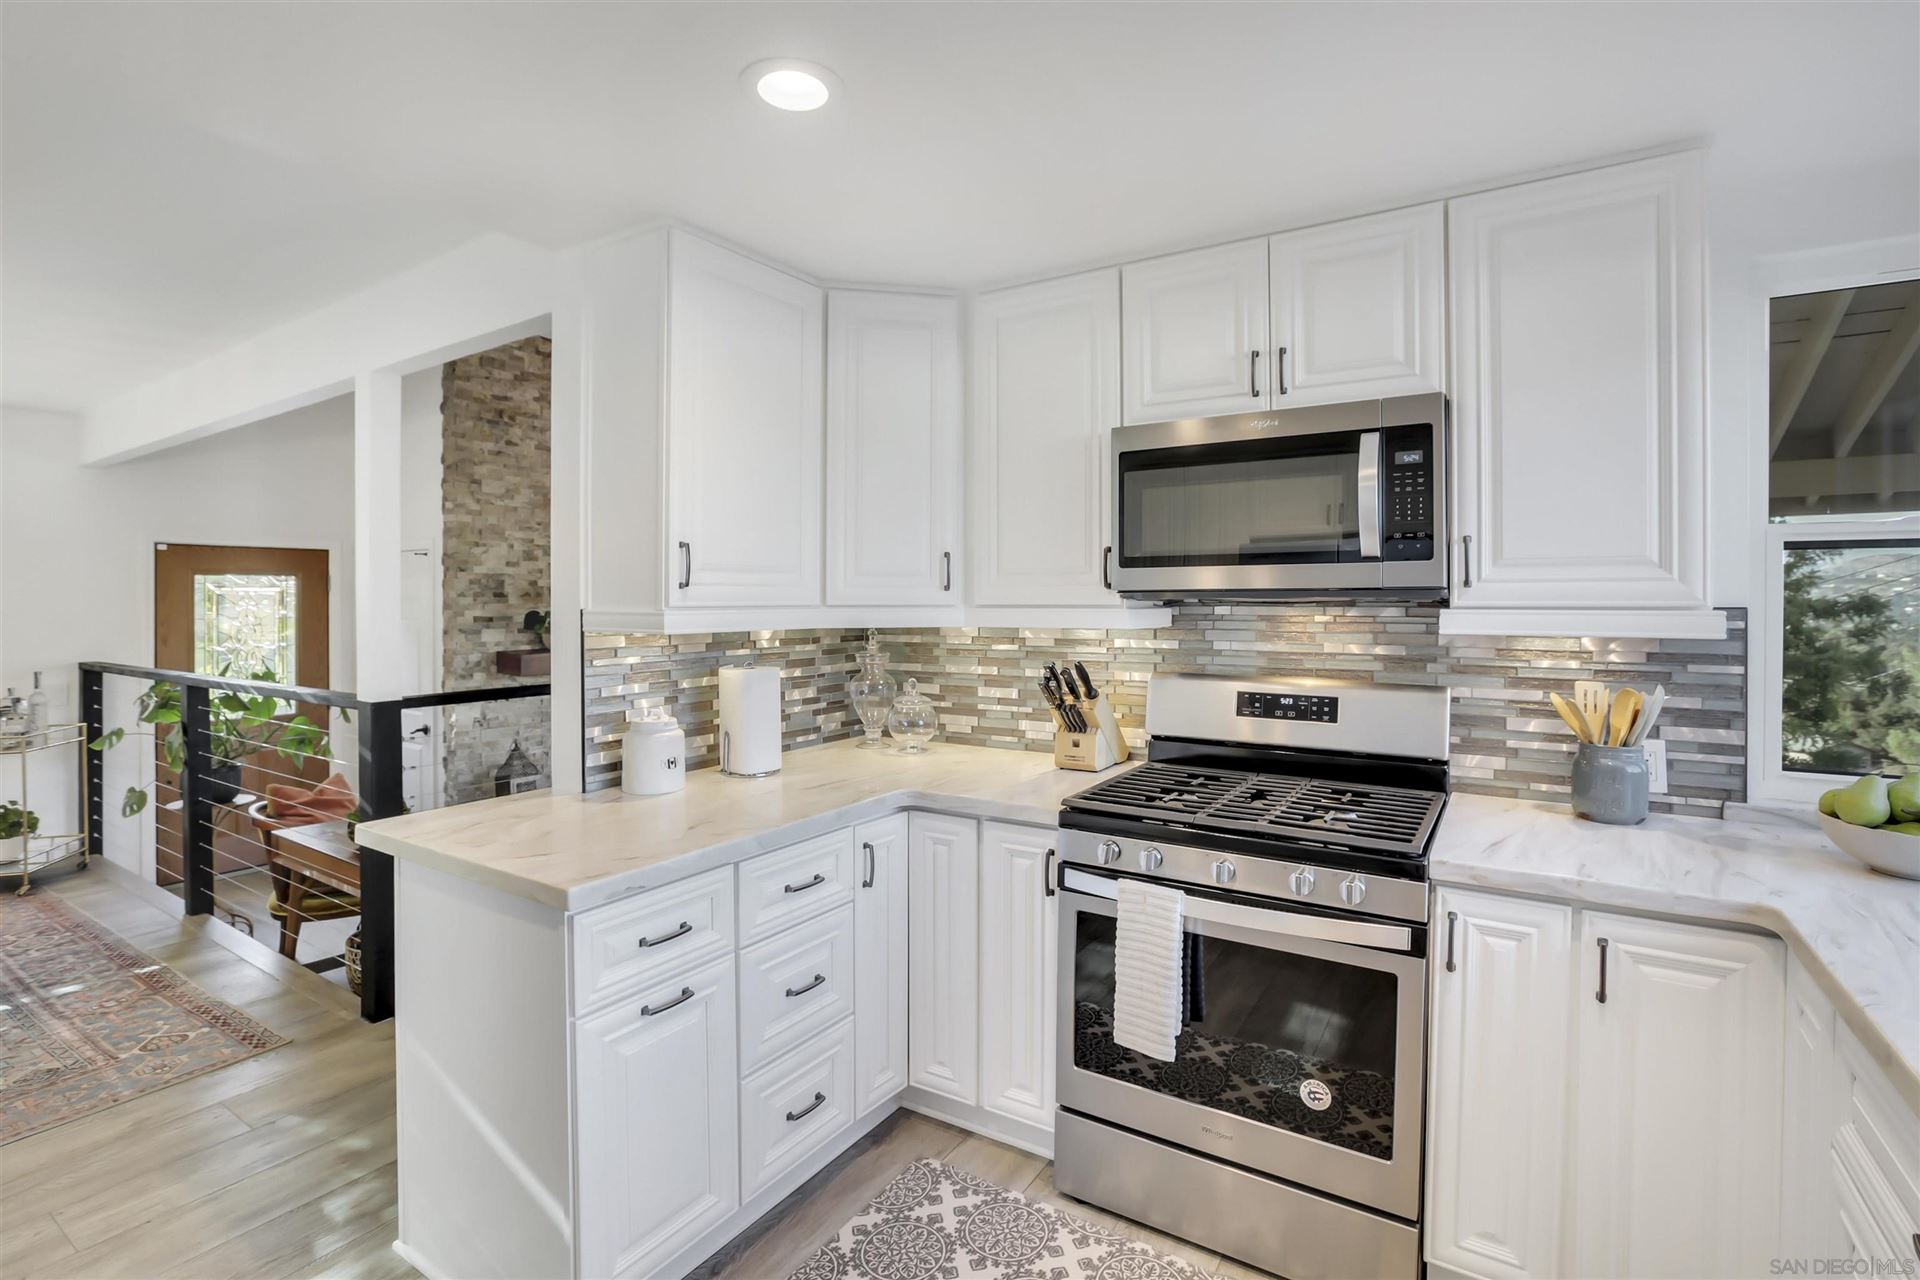 Photo of 9325 WESTHILL RD, LAKESIDE, CA 92040 (MLS # 210026273)